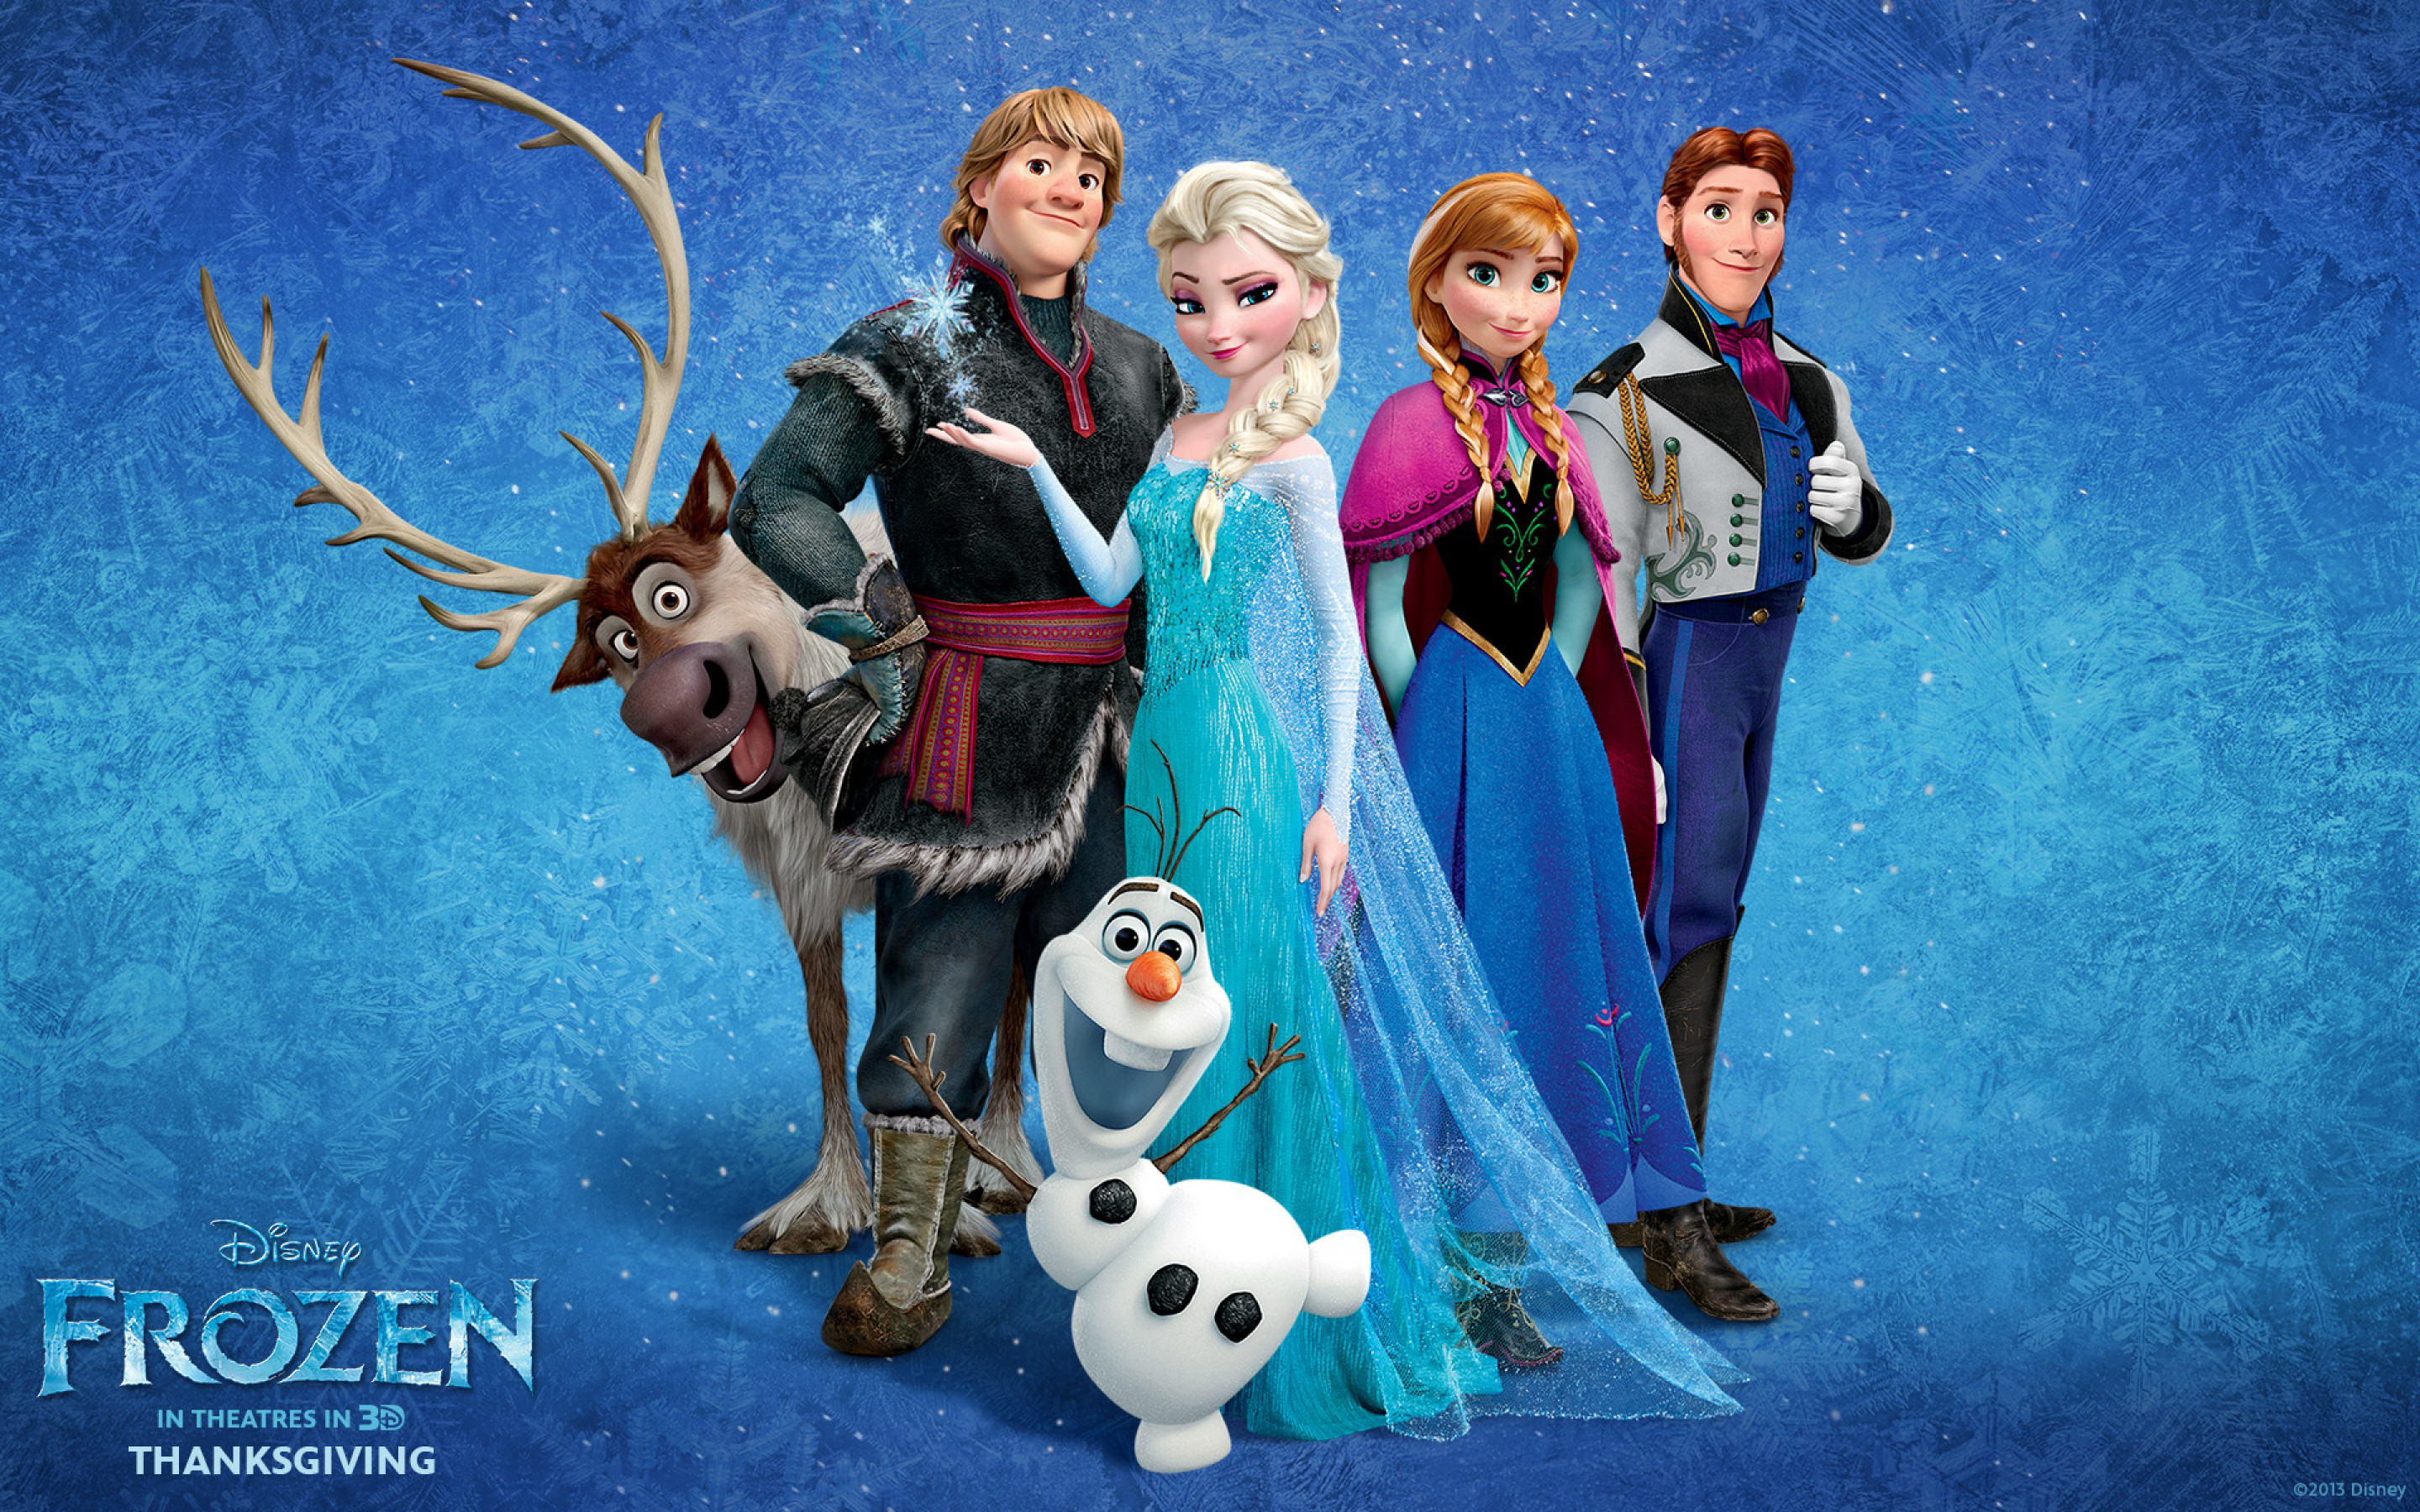 Frozen Wallpaper Disney